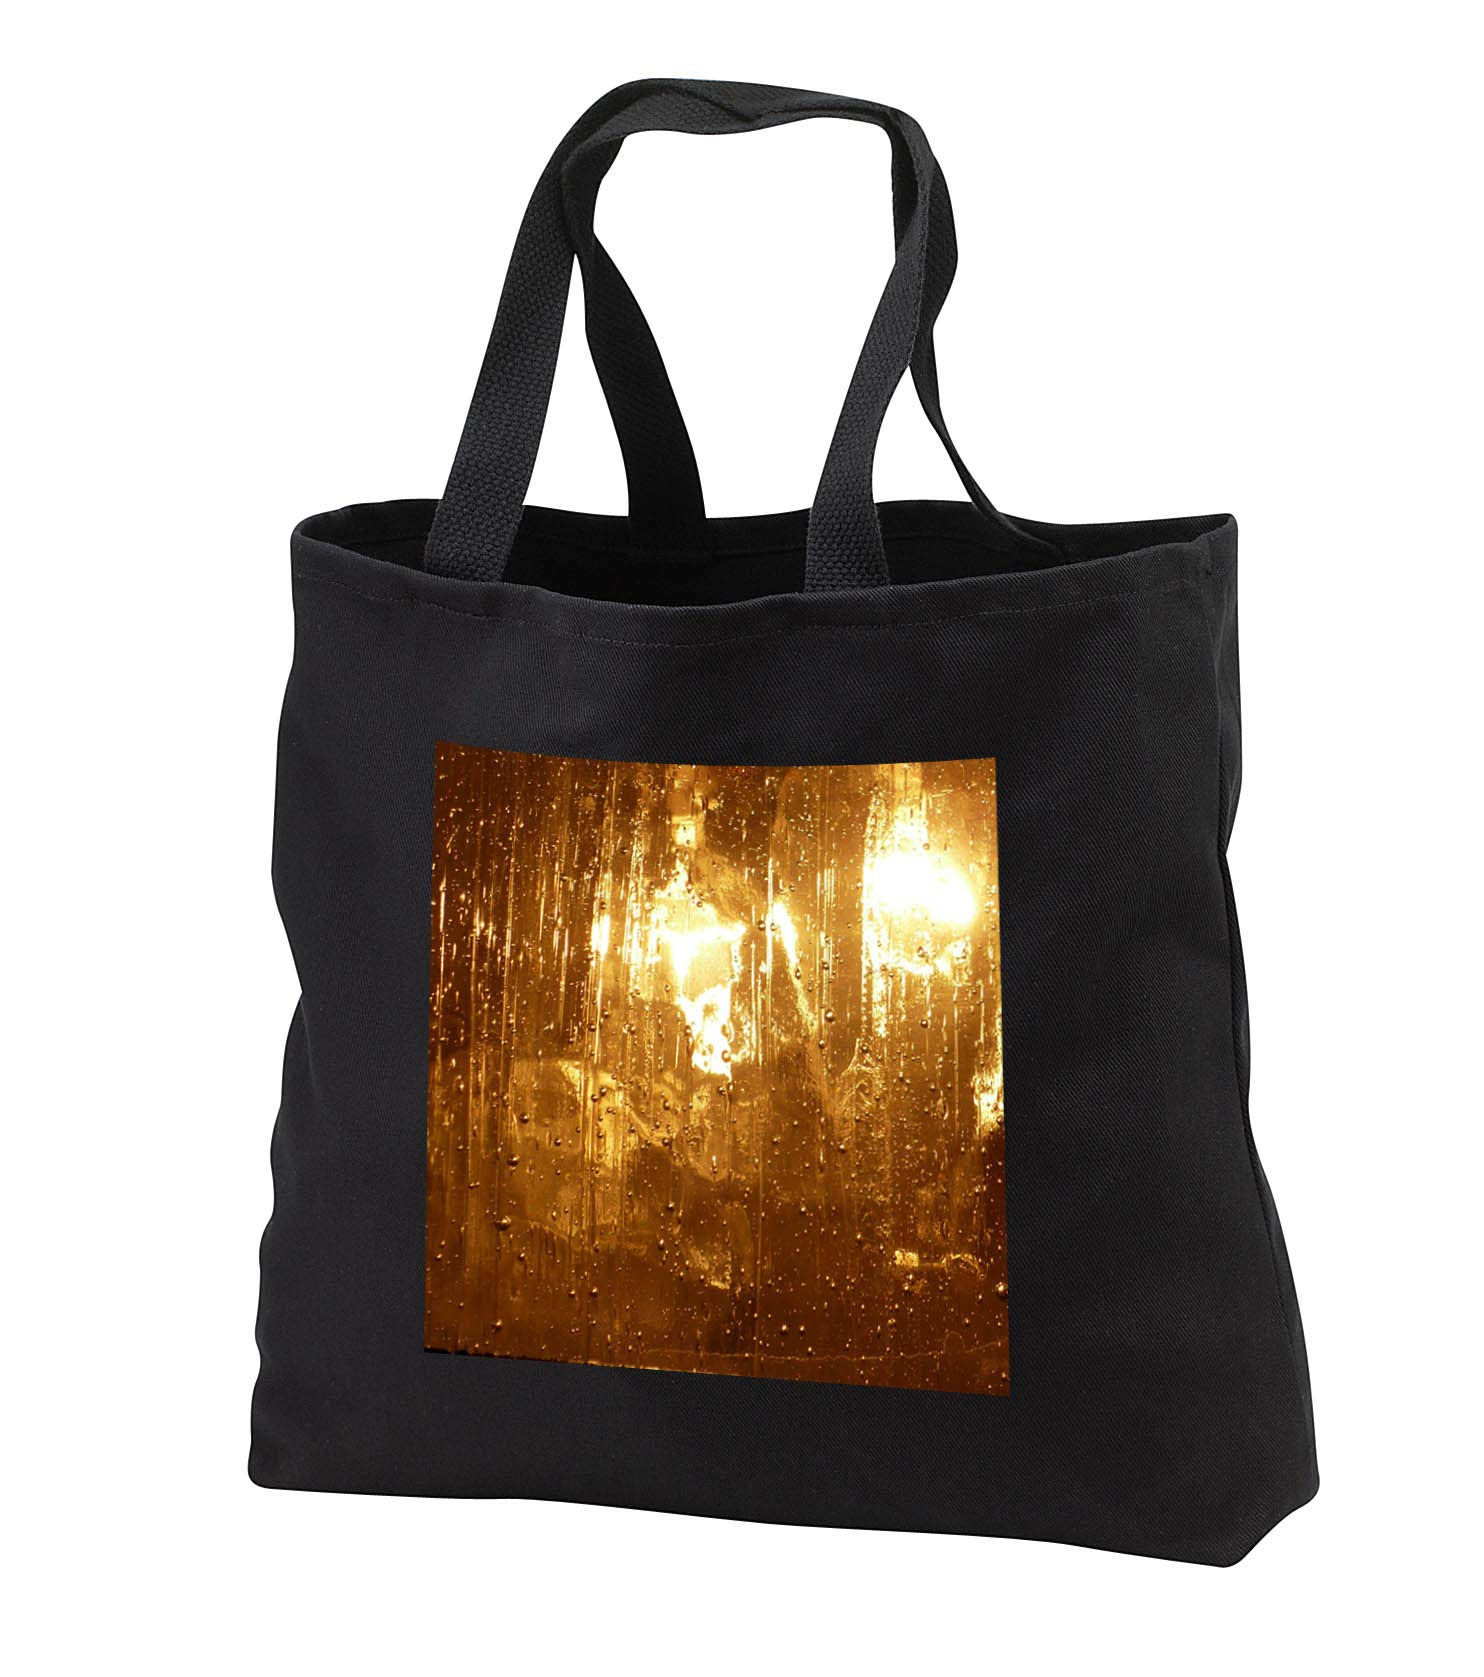 Lens Art by Florene - Everything Gold - Image of Abstract Rainy Gold Glass With Lights - Tote Bags - Black Tote Bag JUMBO 20w x 15h x 5d (tb_291027_3)